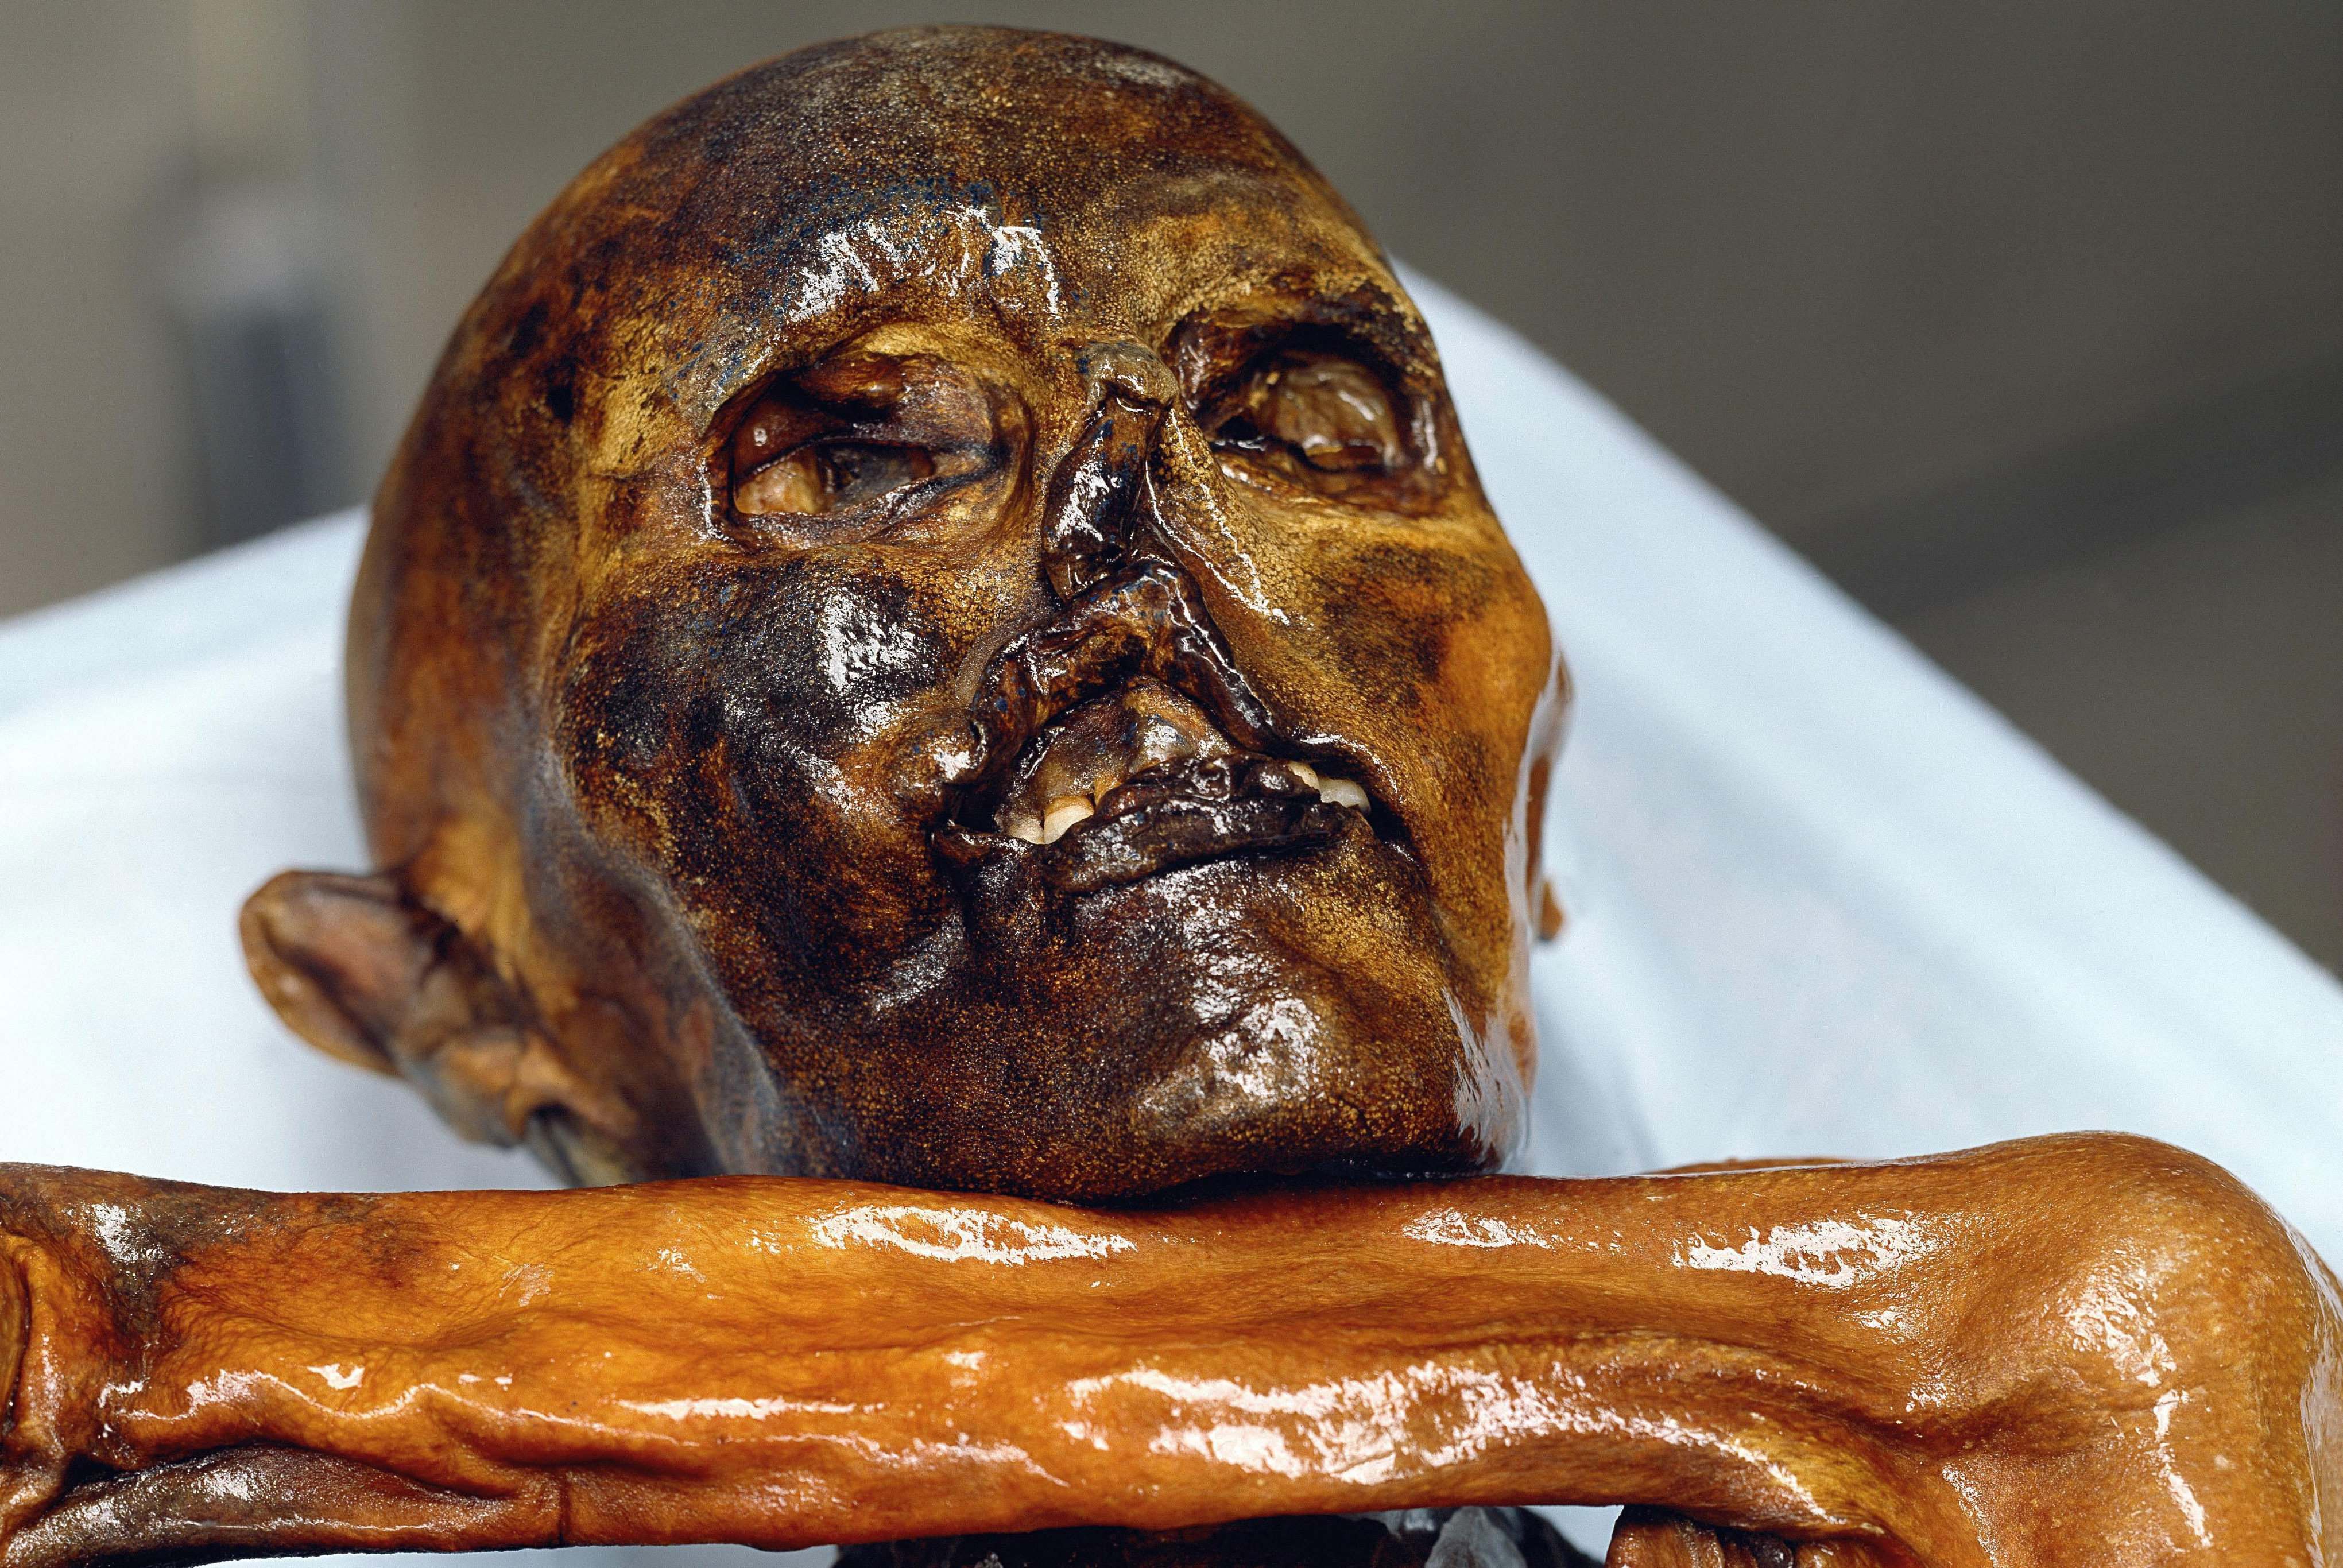 A 5,300-year-old mummified corpse, known as Otzi, found in the Alps